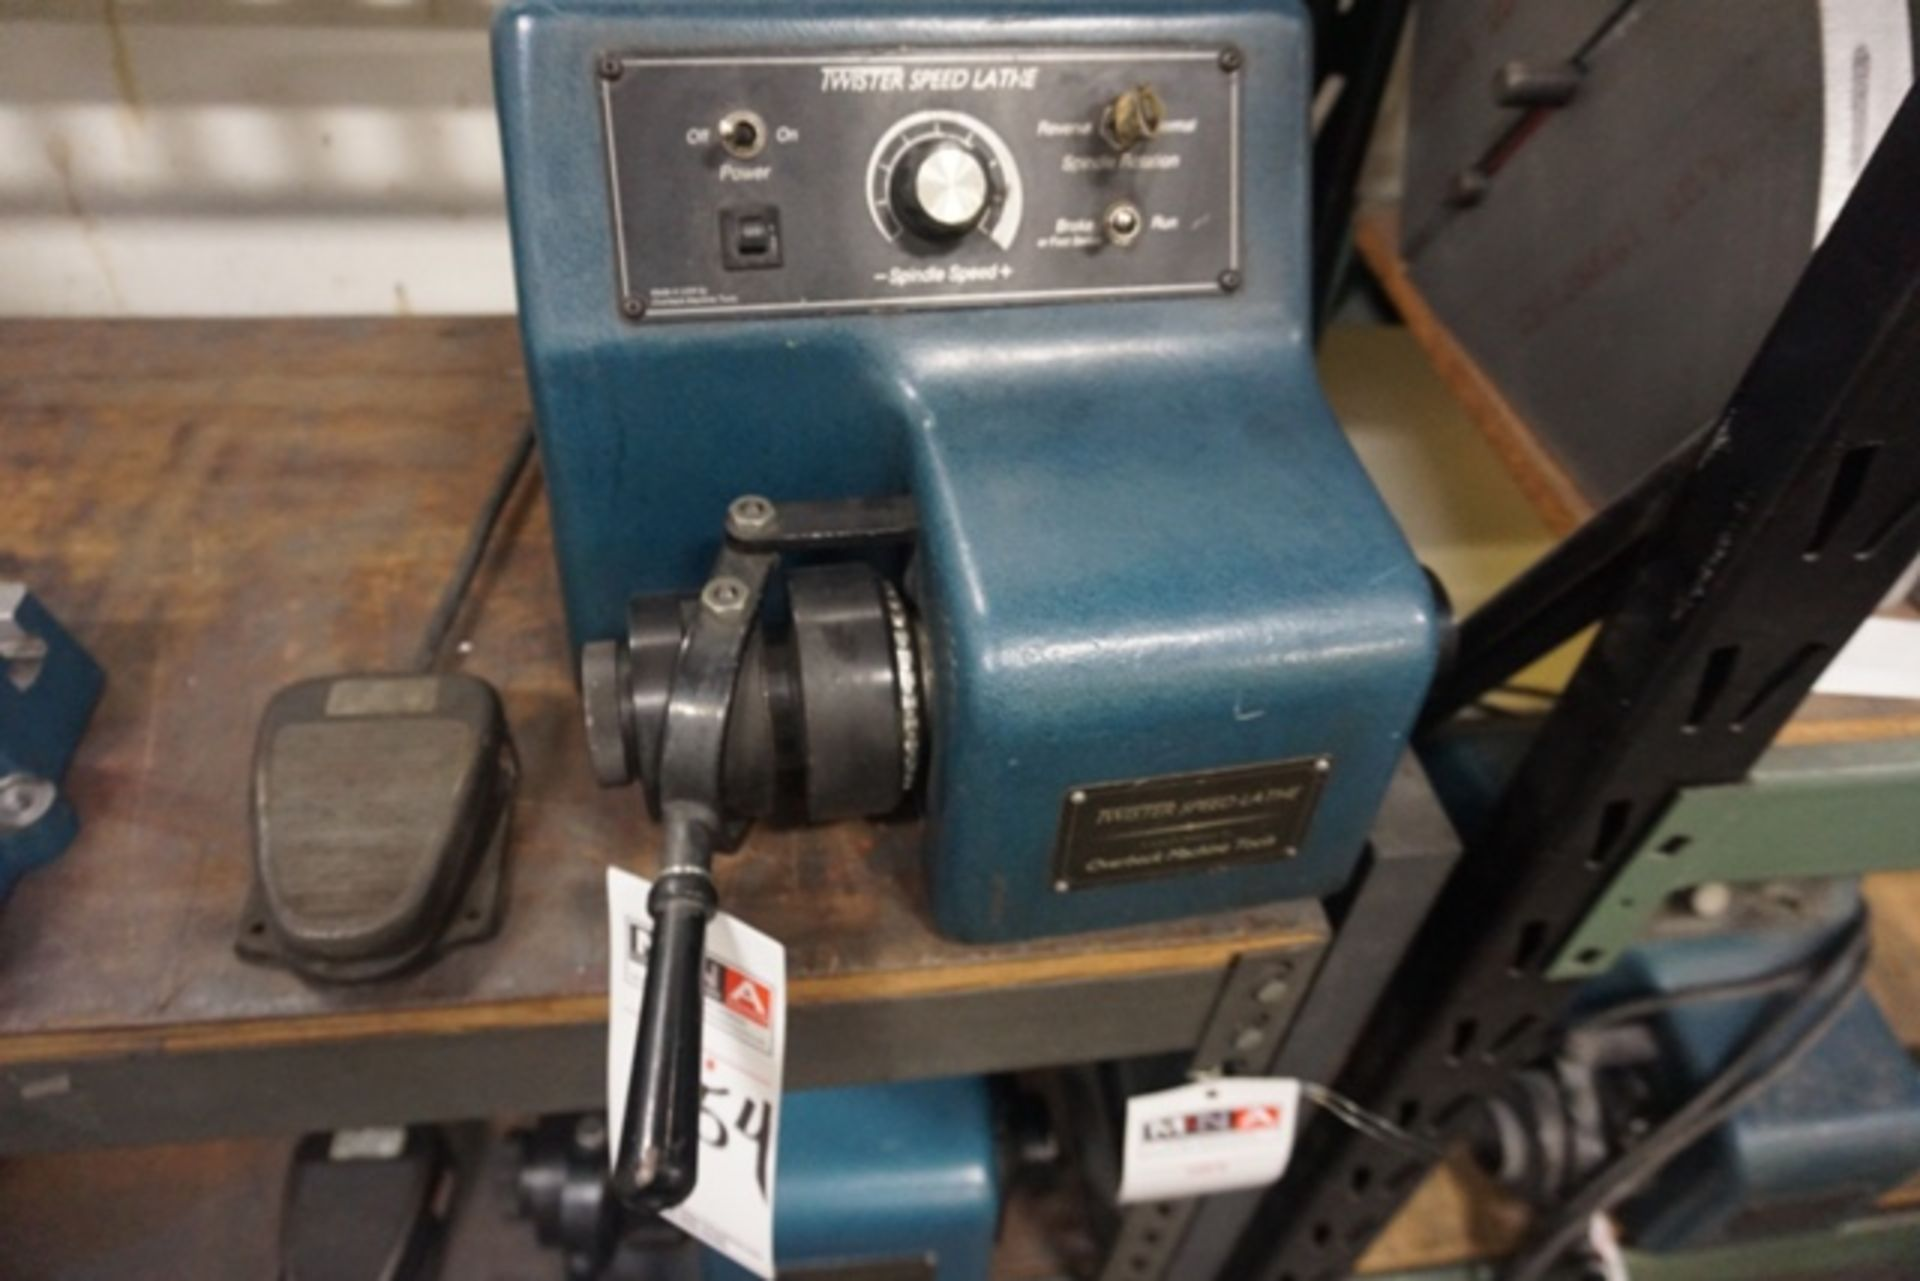 Lot 1154 - Overbeck Machine LT-1B Twister Speed Lathe, 5C Collet Bench Top Lathe